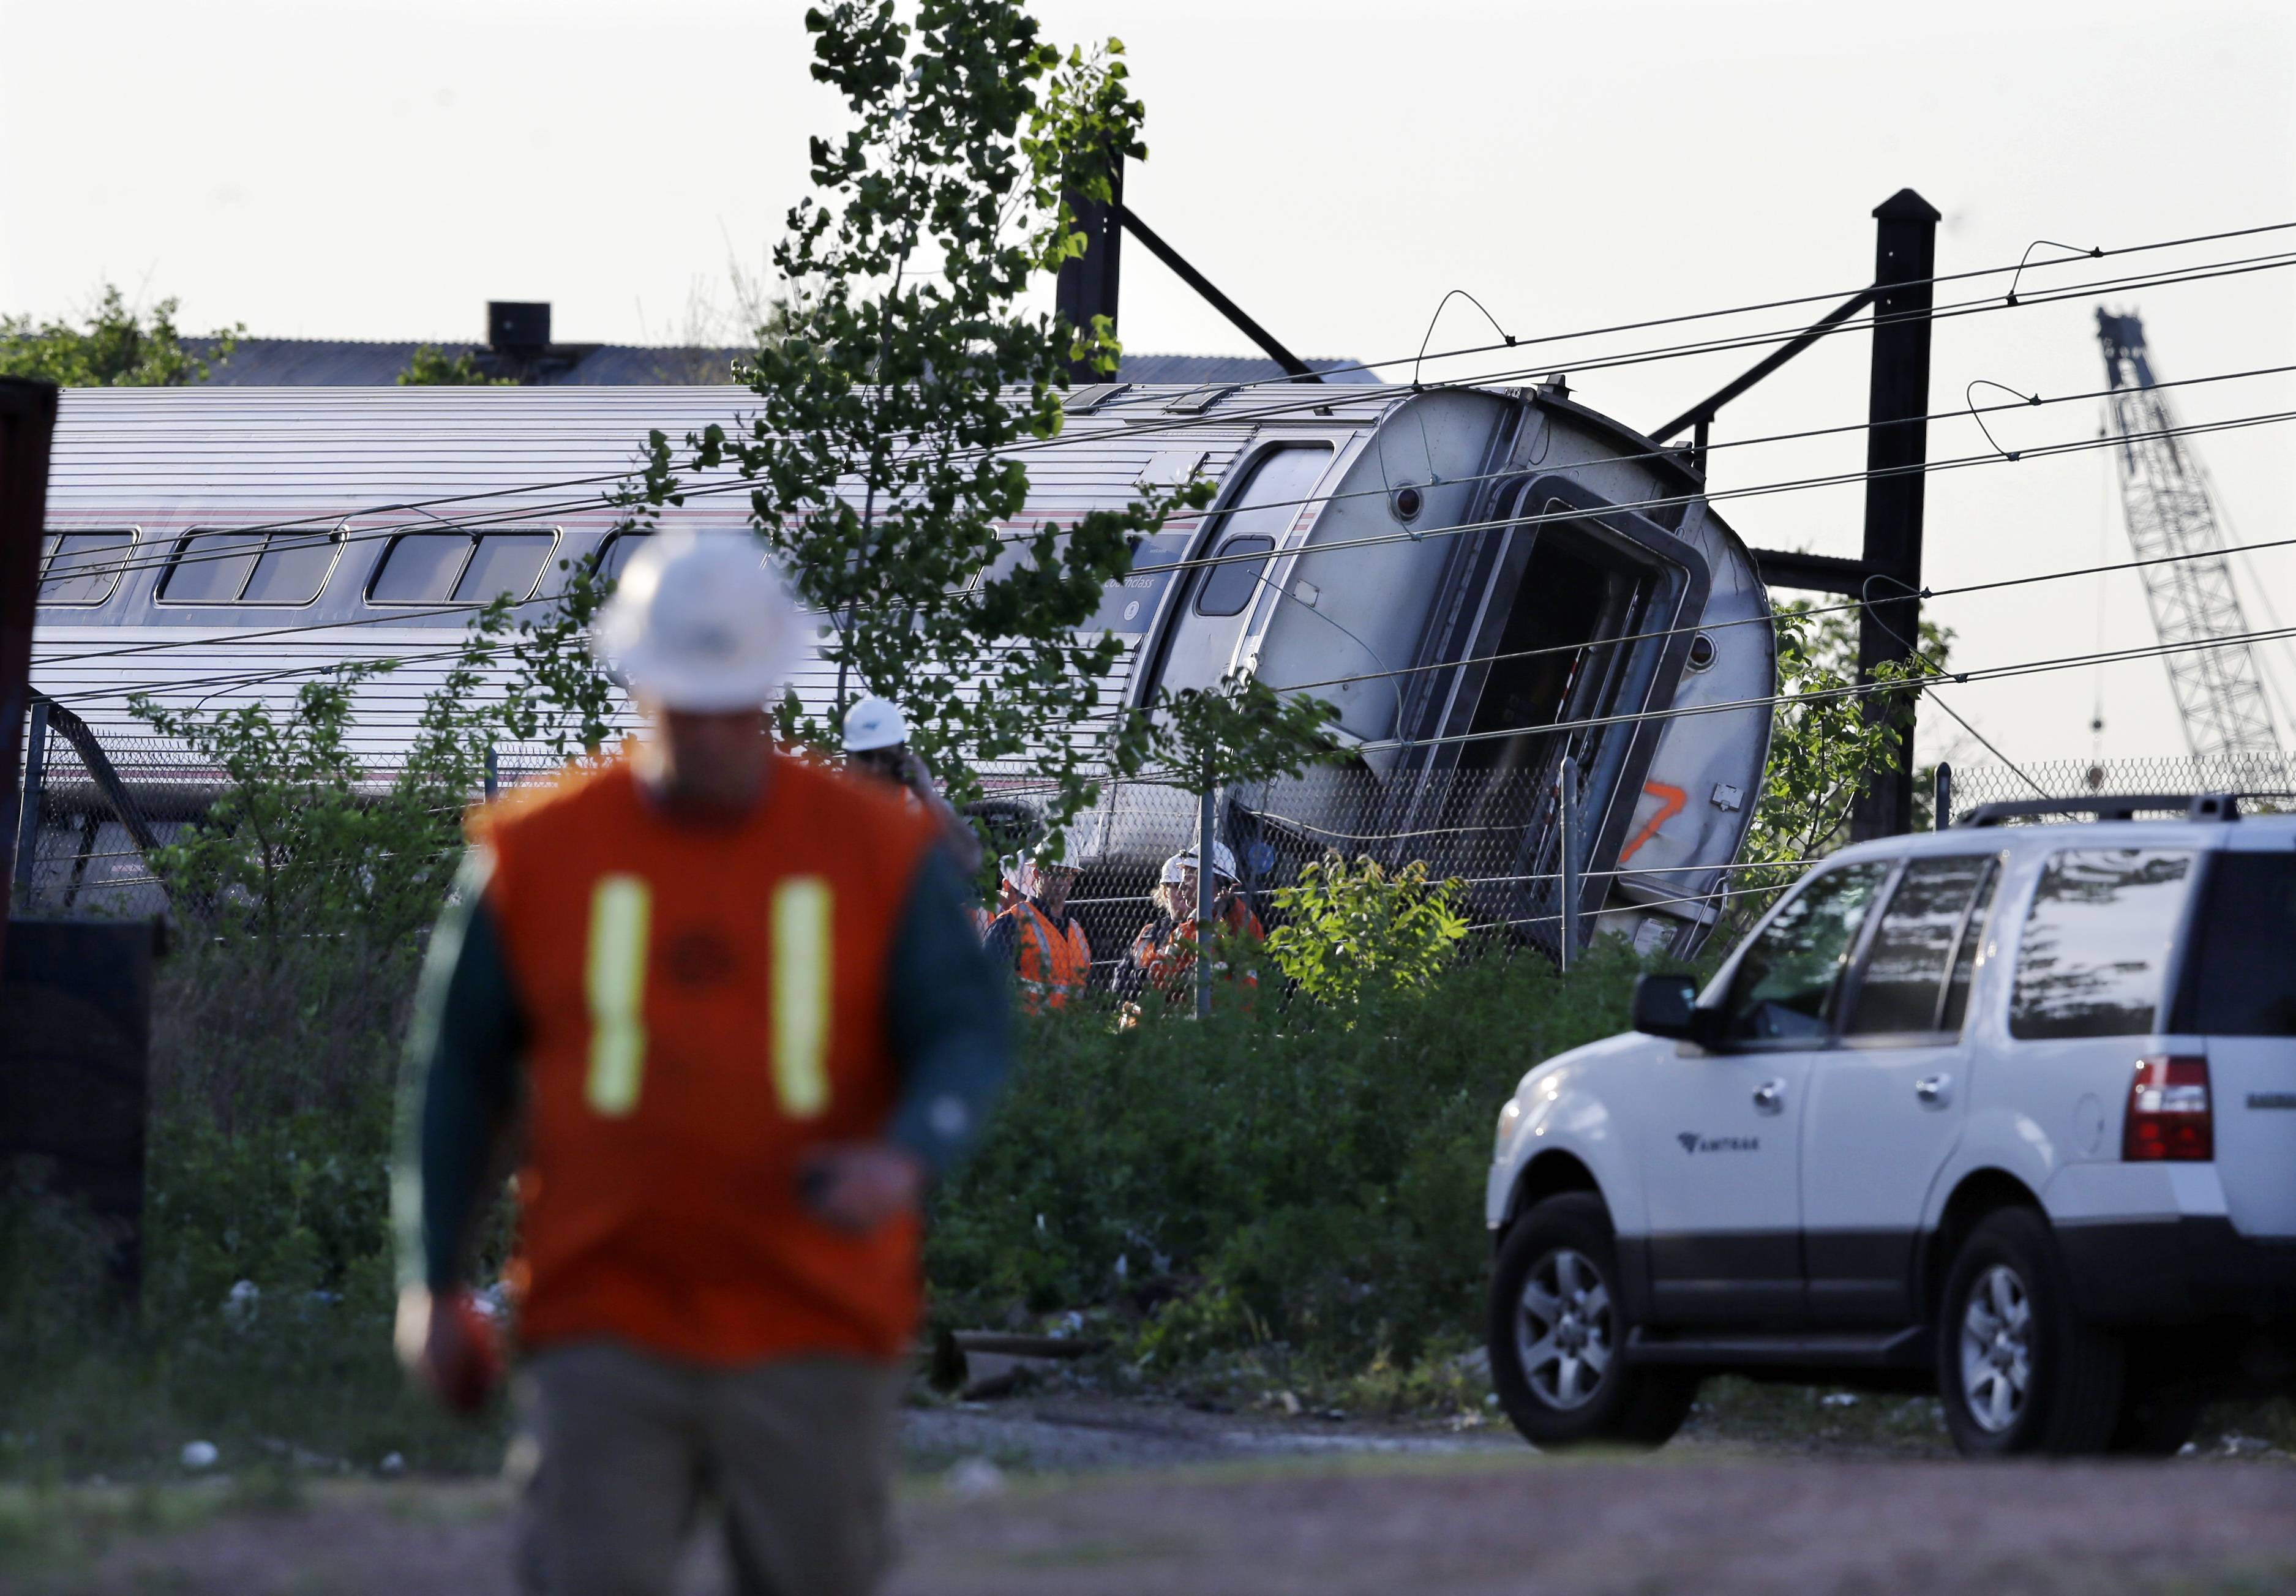 Stopping train derailments here: Pricey brake system months, years away